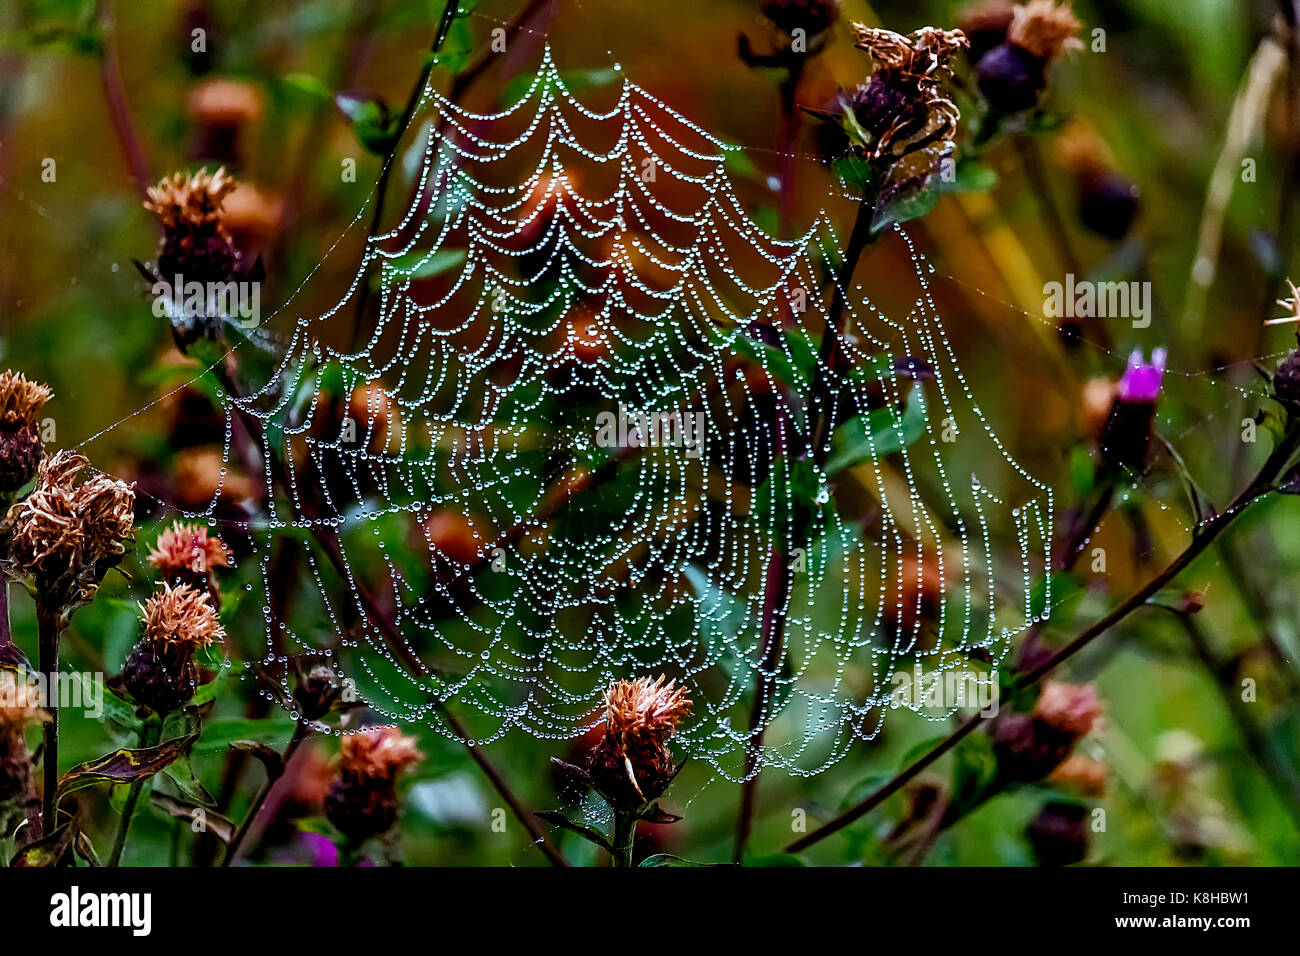 Dew covered spiders web - Stock Image